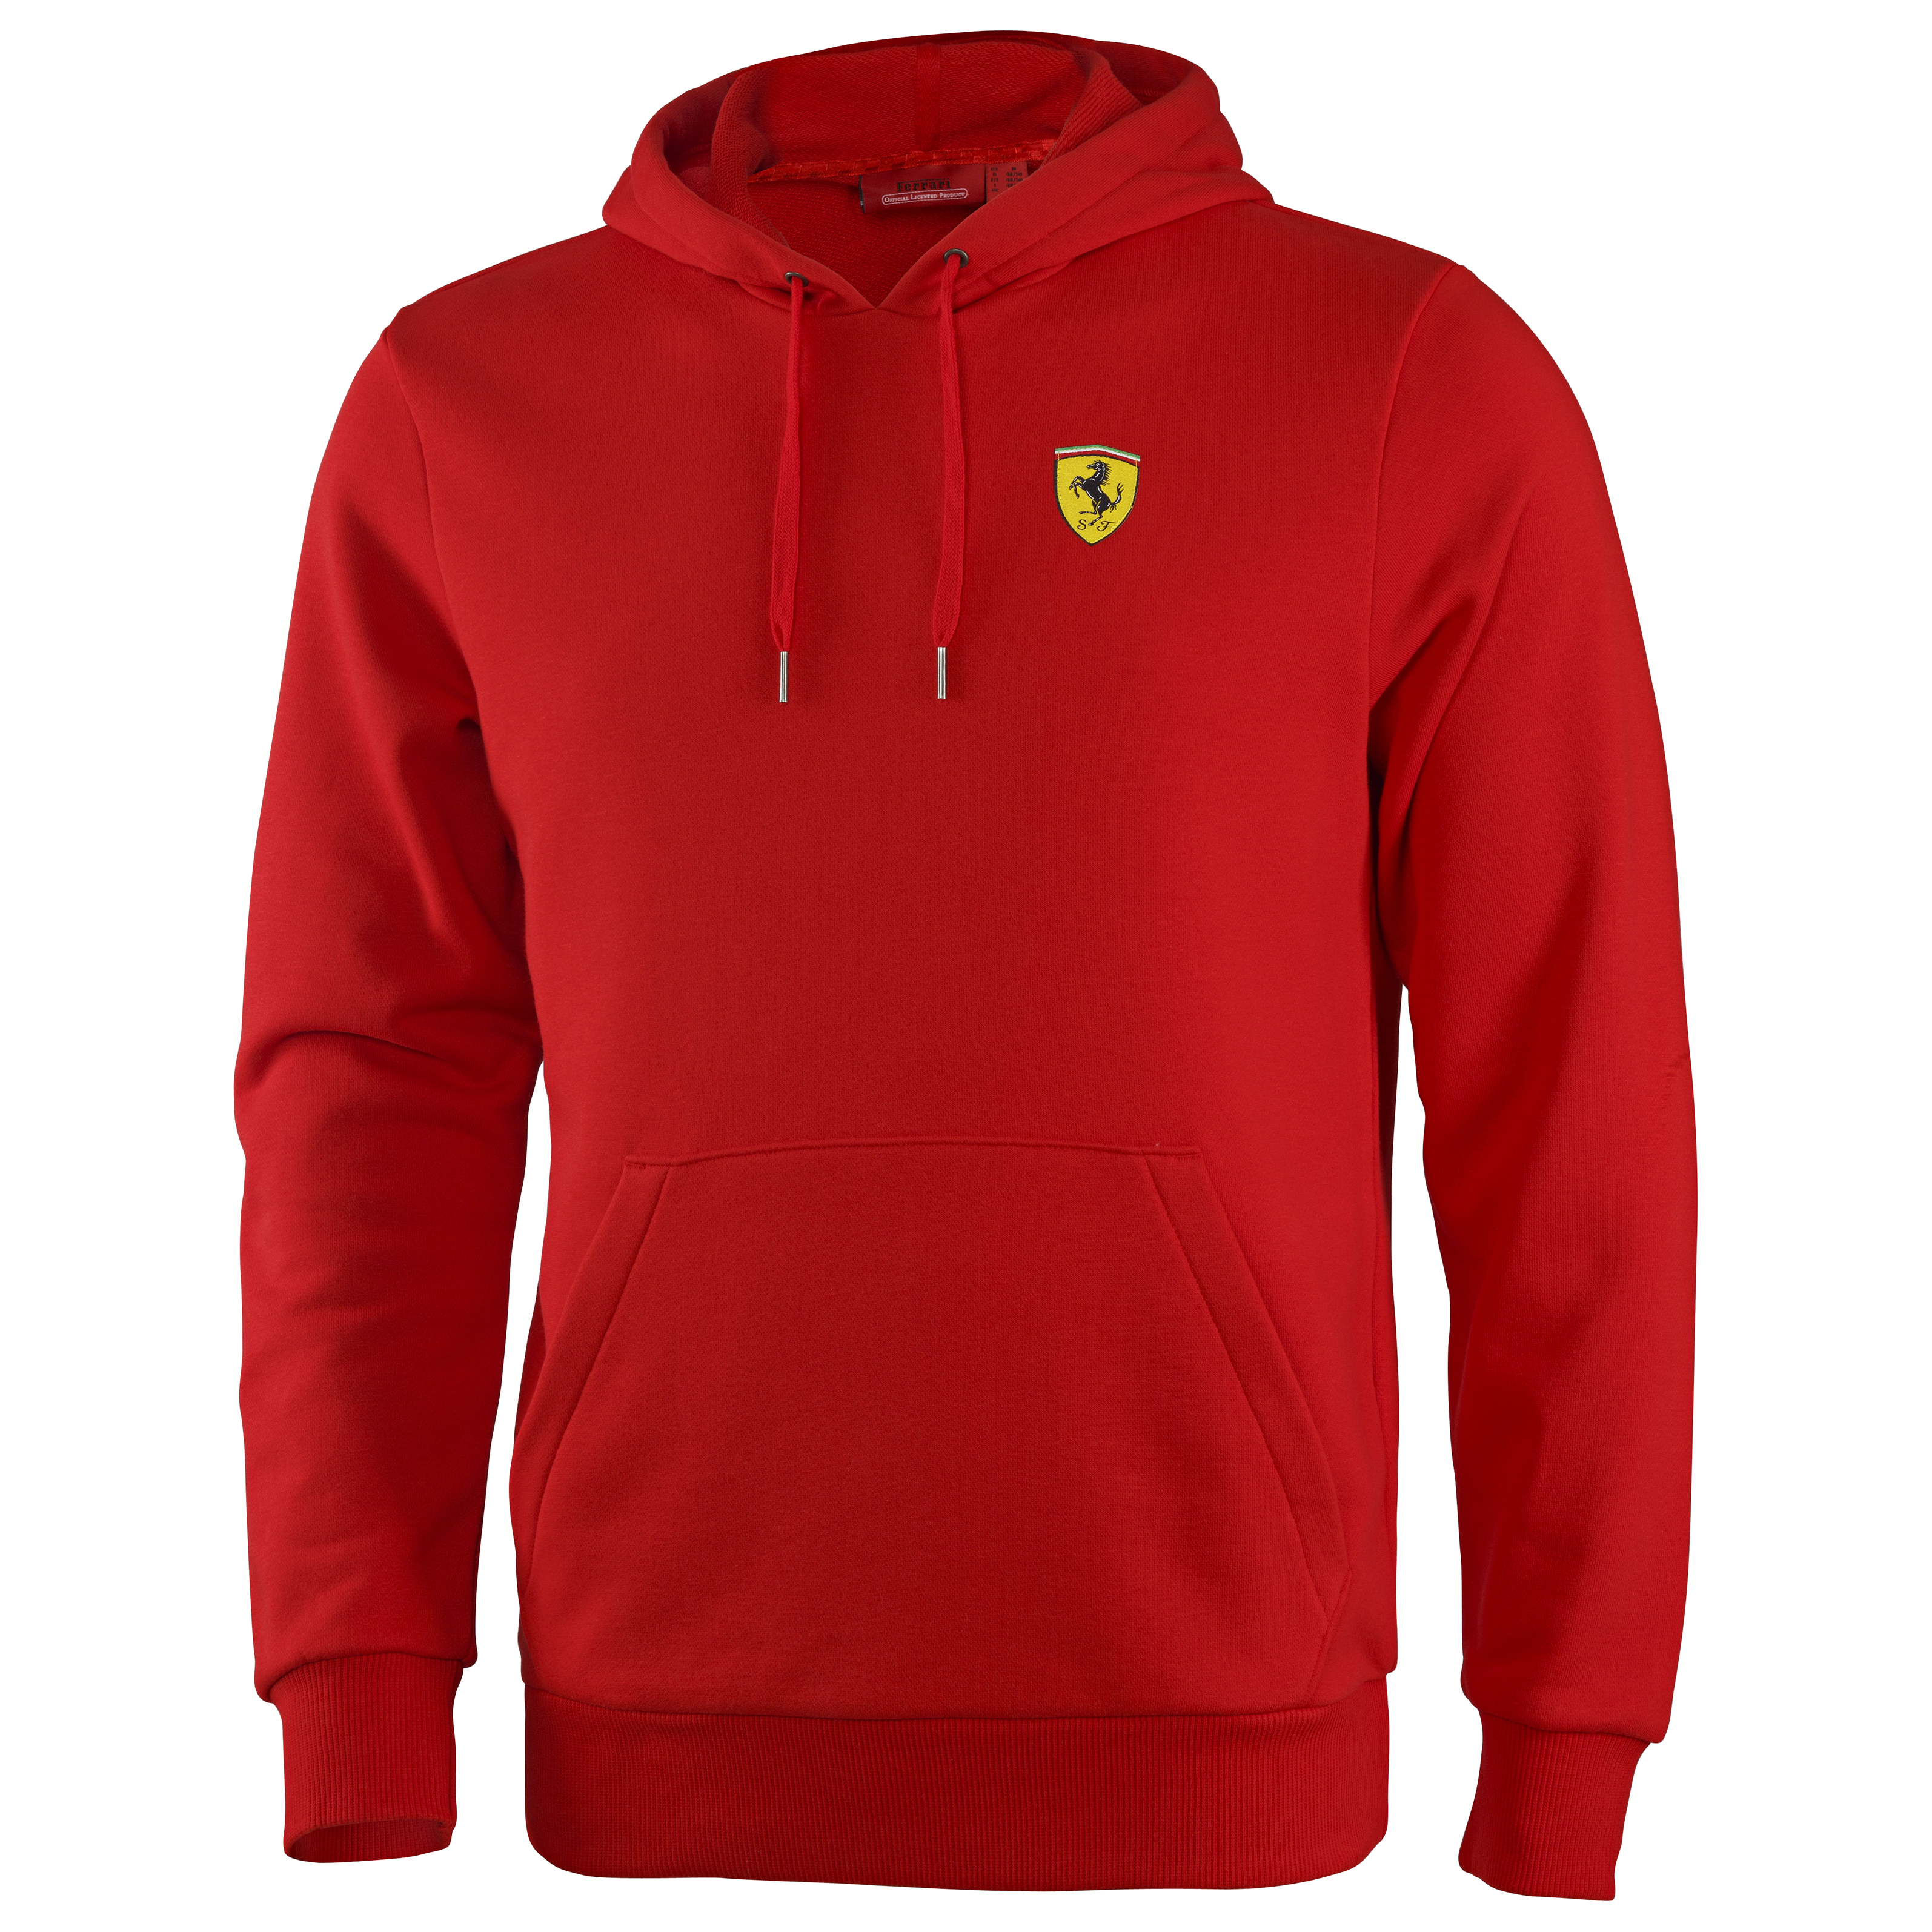 Scuderia Ferrari Scuderia Hooded Sweatshirt - Red